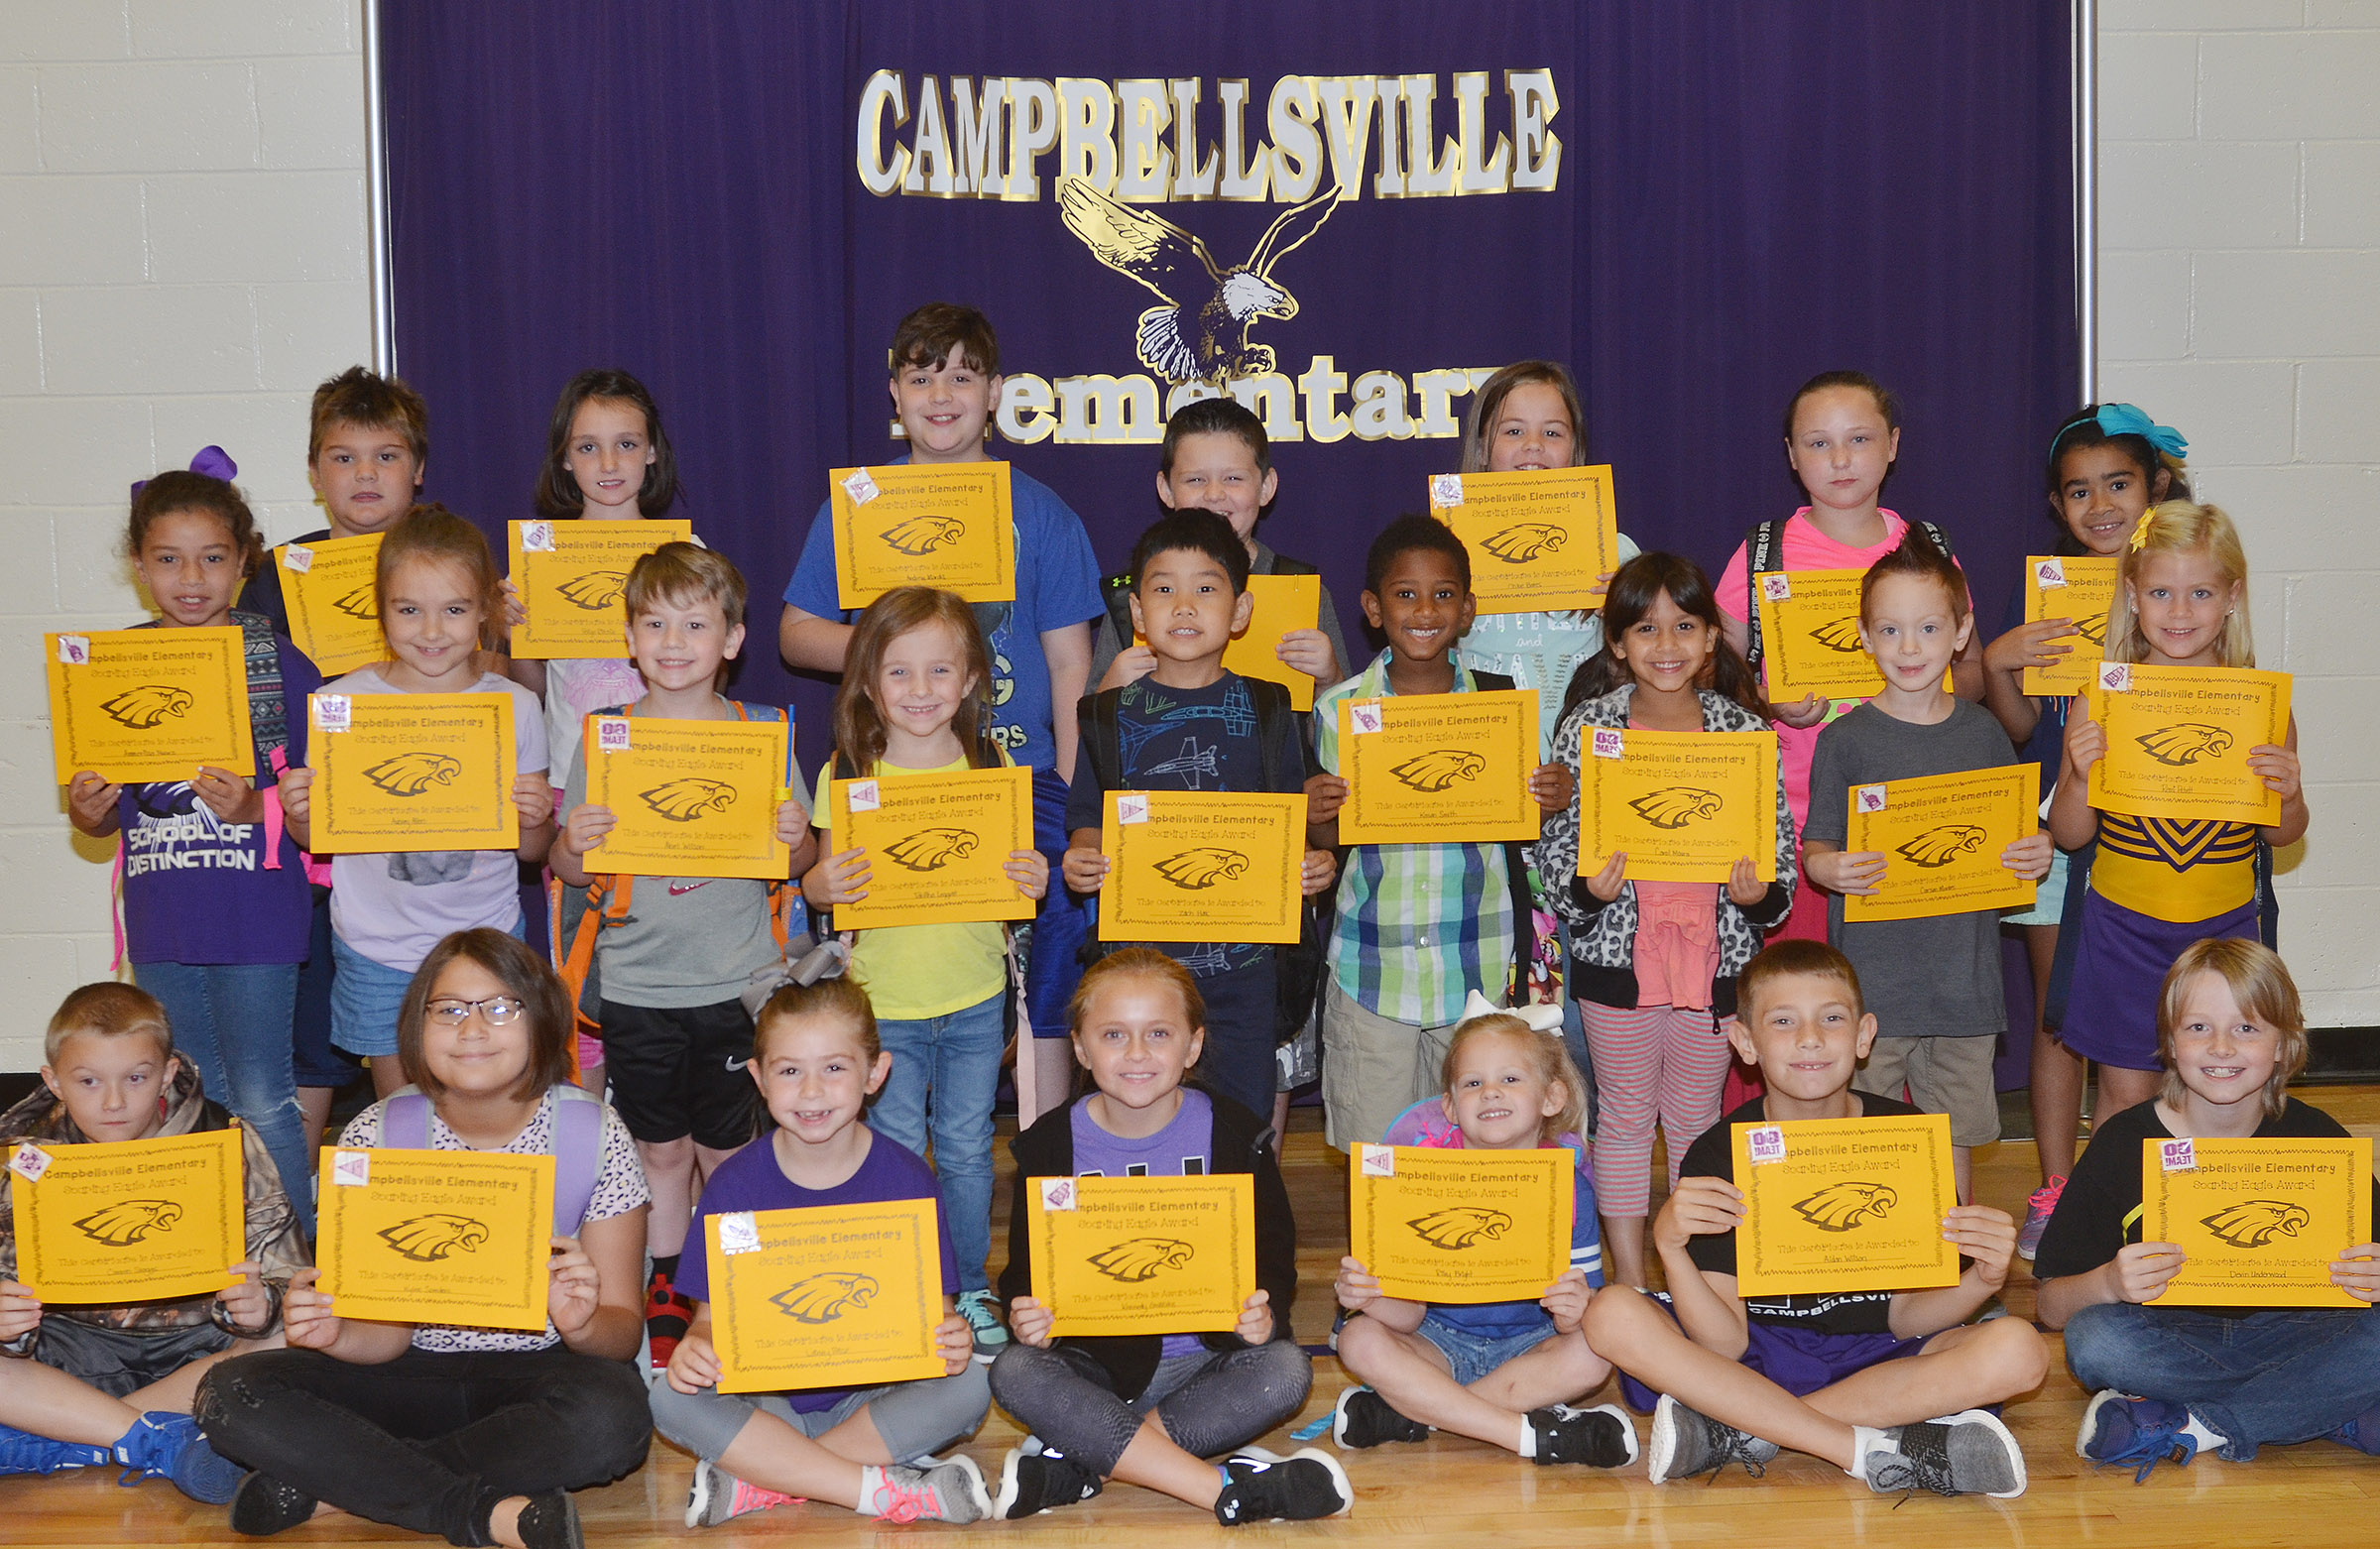 From left, front, are third-grader Camren Skaggs, fifth-grader Kylee Sowders, second-grader Lainey Price, fourth-grader Kennedy Griffiths, kindergartener Riley Bright, third-grader Aidan Wilson and fourth-grader Devin Underwood. Second row, second-grader Ammarissa Nunez, first-grader Aubrey Allen, kindergarteners Abel Wilson and Tabitha Leggett, second-grader Zach Hak, first-graders Kasen Smith, Carol Moura and Carson Montes and kindergartener Remi Petett. Back, fifth-grader Logan England, fourth-grader Paige Ritchie, fifth-grader Andrew Mardis, third-grader Weston Veltman, fourth-grader Chloe Bates, fifth-grader Shyanna Young and third-grader Sophia Santos. Second-grader Fabrizio Segura is absent from the photo.